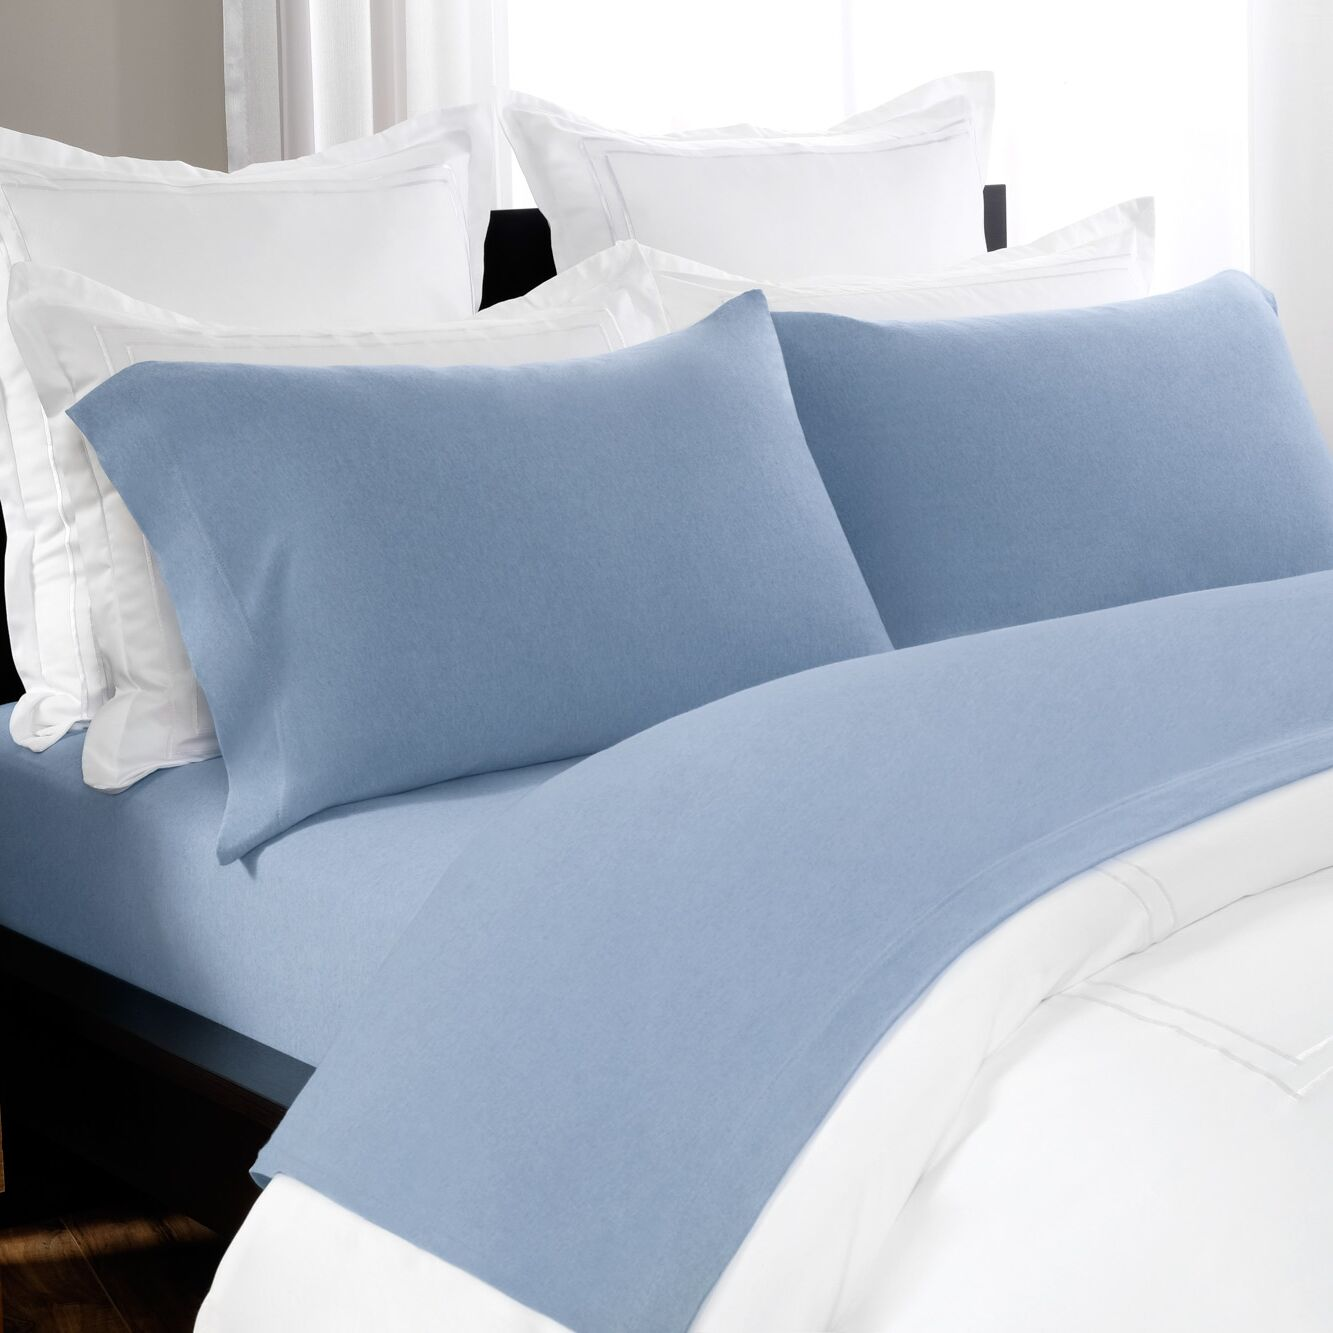 100% Cotton Heathered Jersey Sheet Set Size: King, Color: Blue Chambray